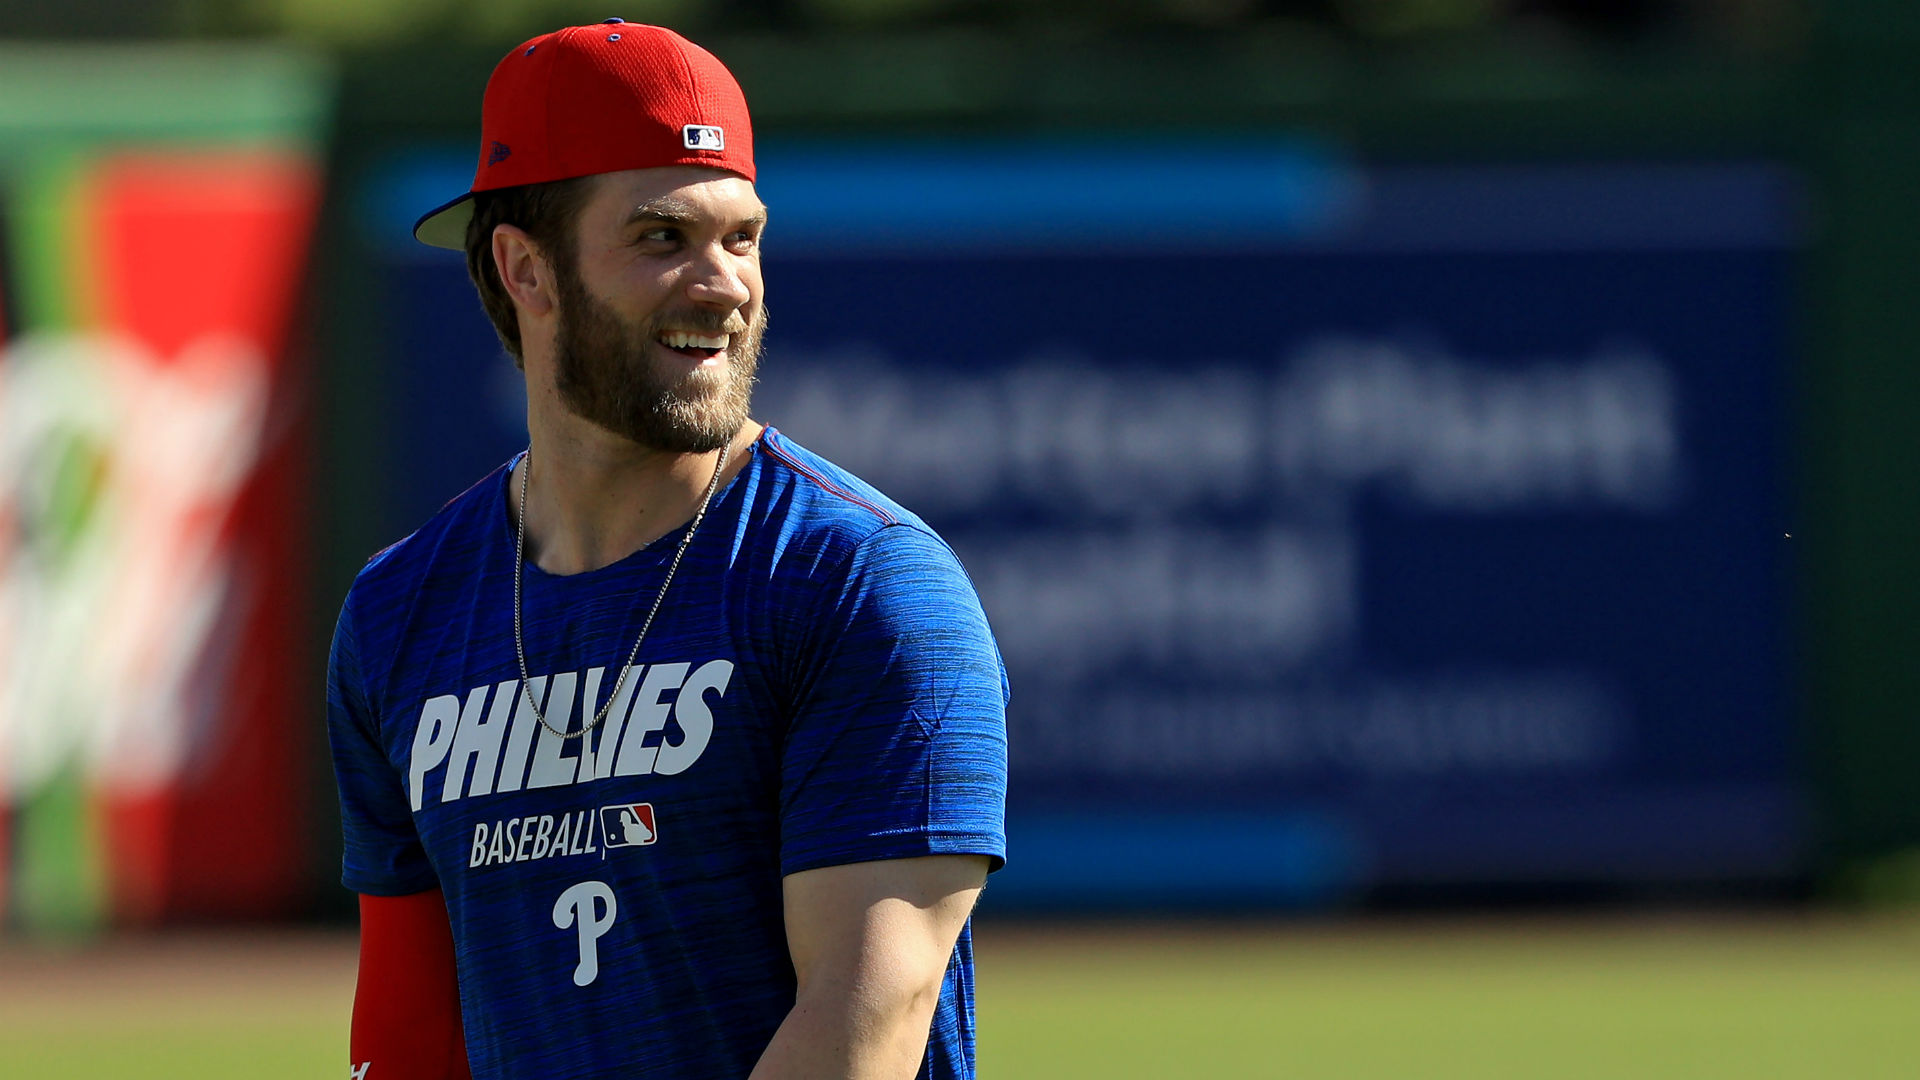 Bryce Harper's Phillies jersey sales set a record